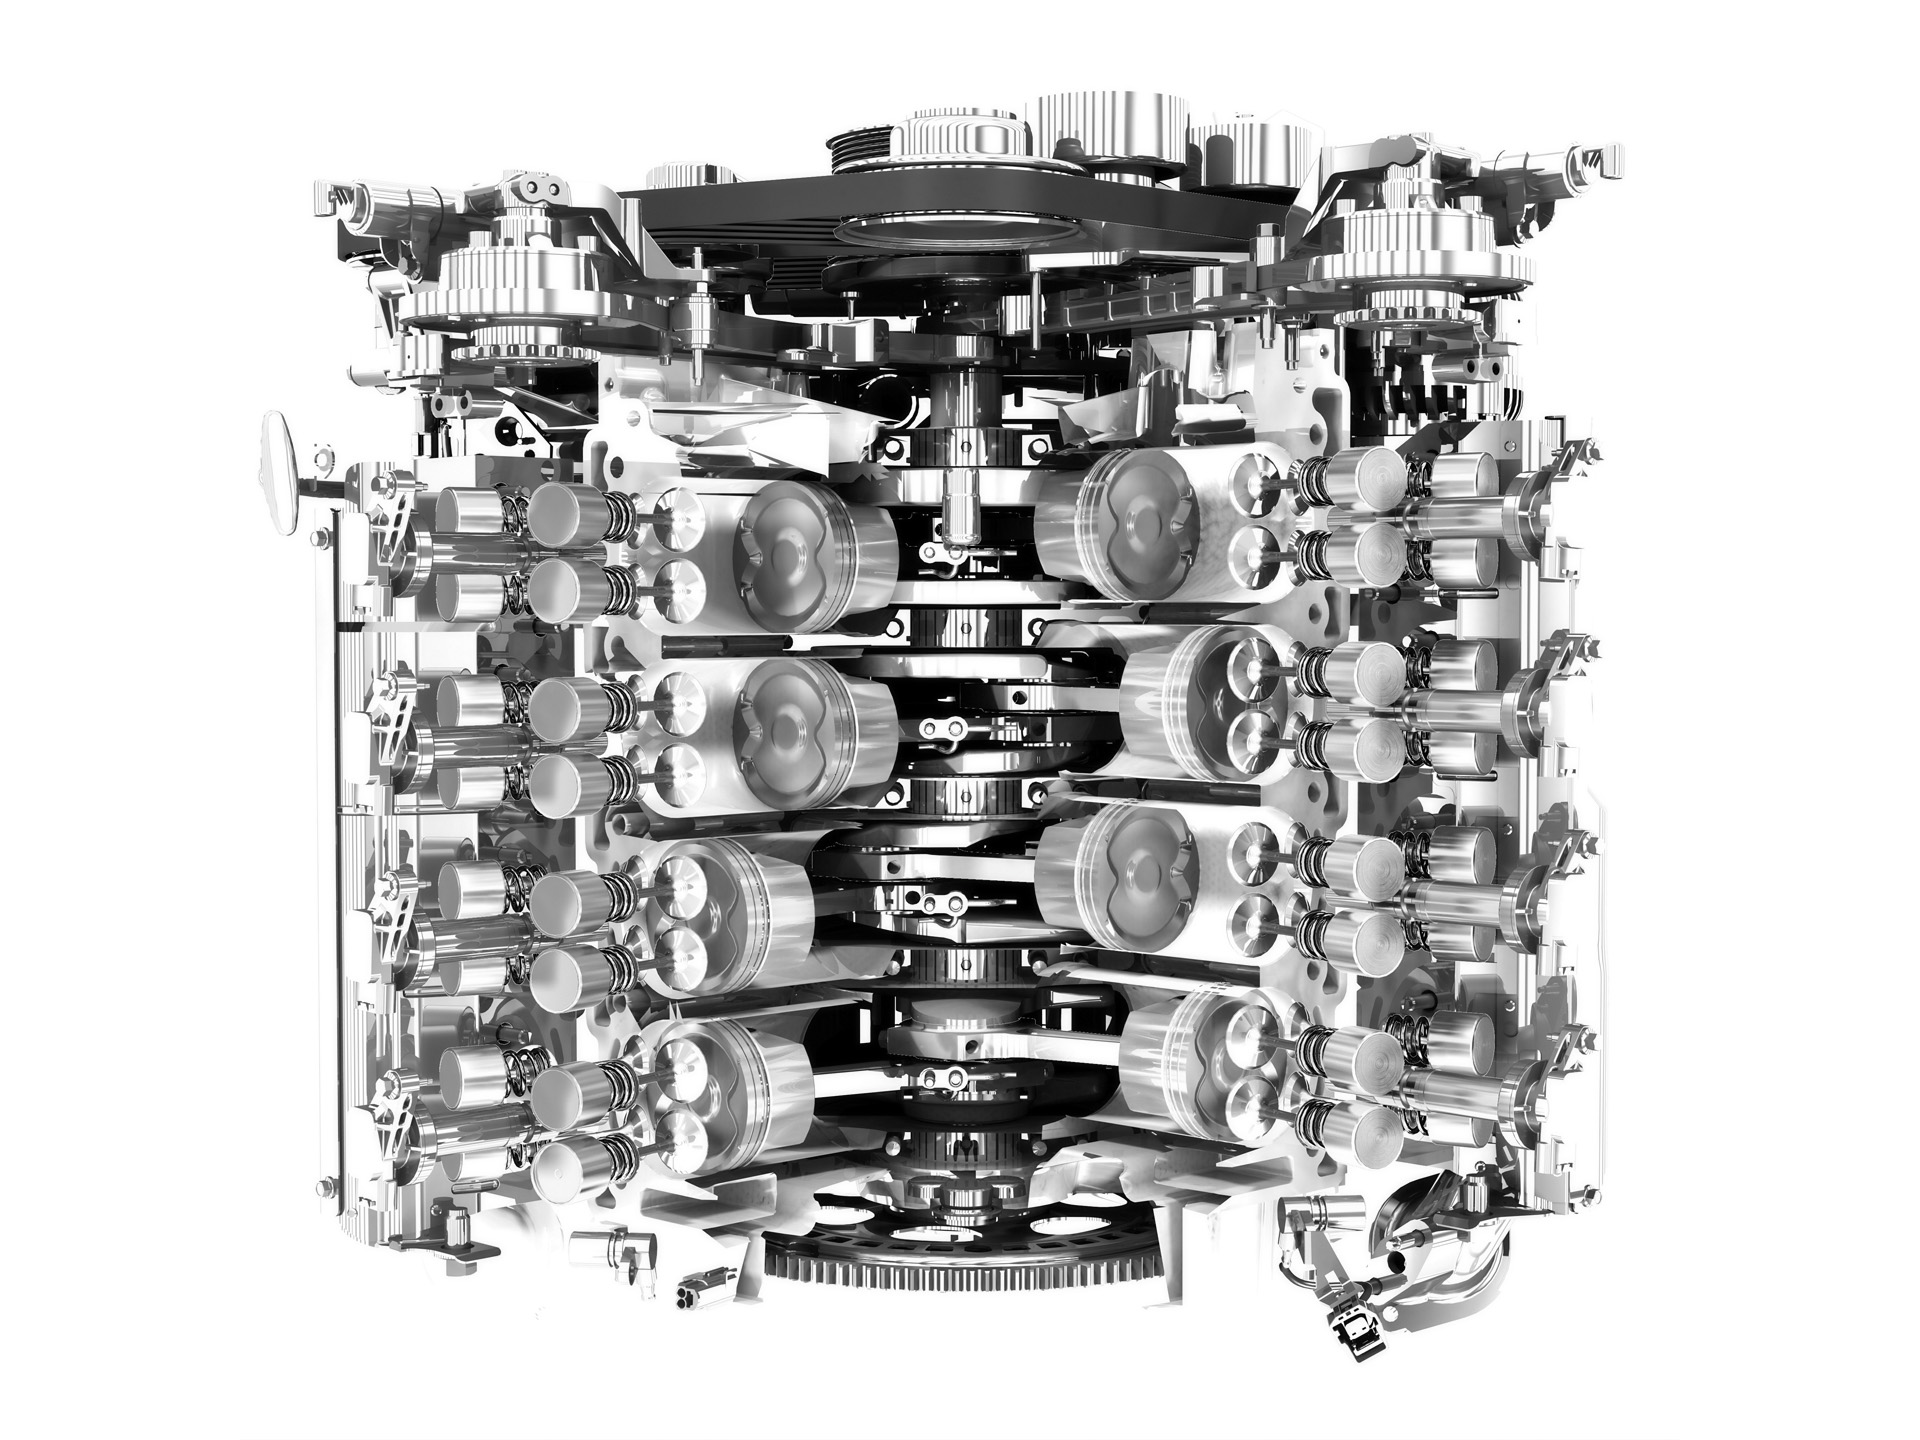 Sample P0962 Engine